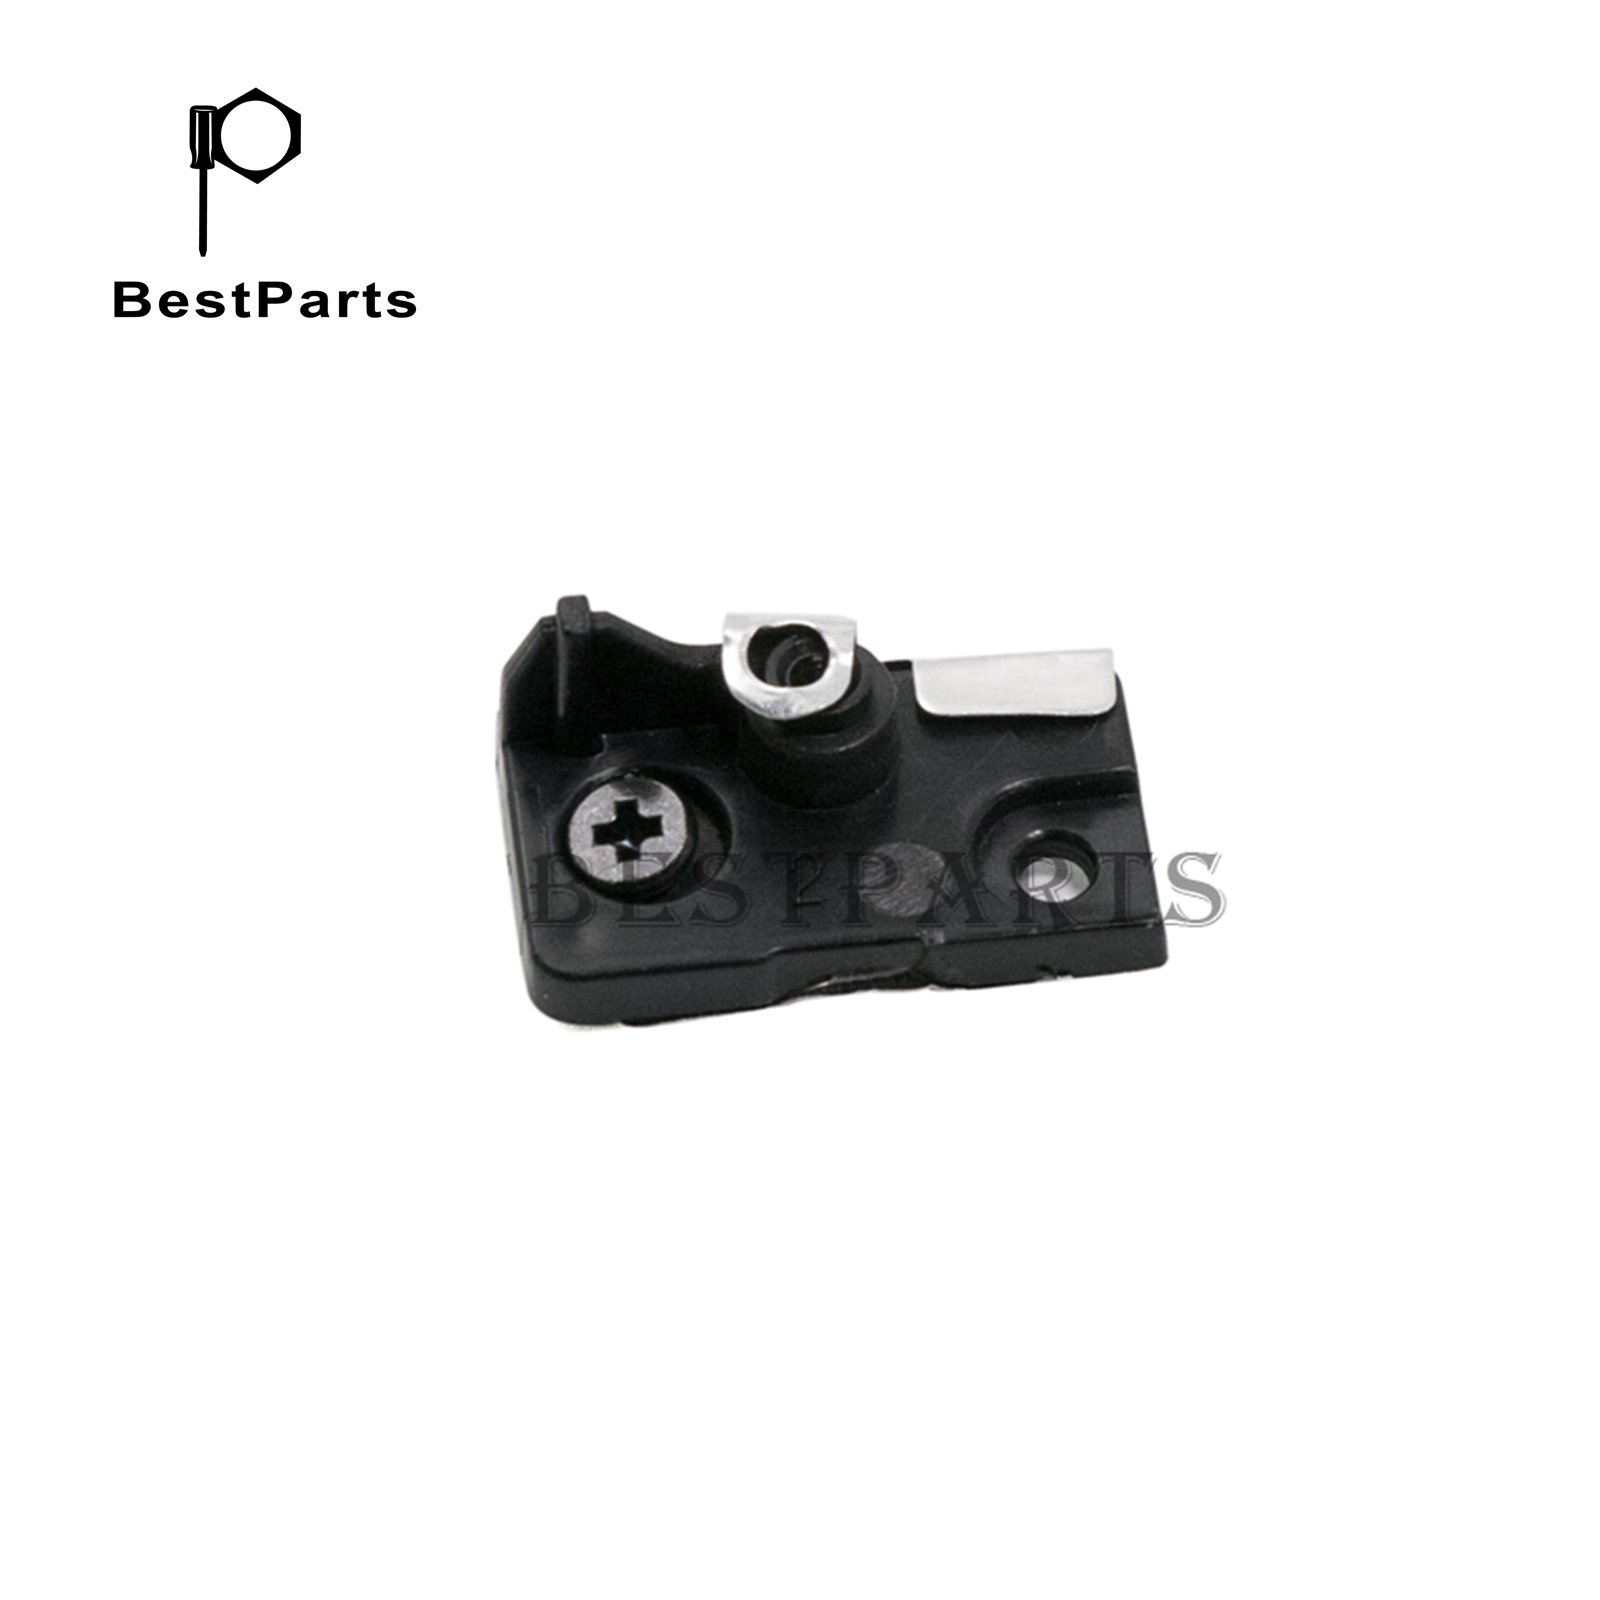 BestParts Replacement NEW Dell Latitude 5480 5580 Precision 3520 M.2 SSD Frame Caddy